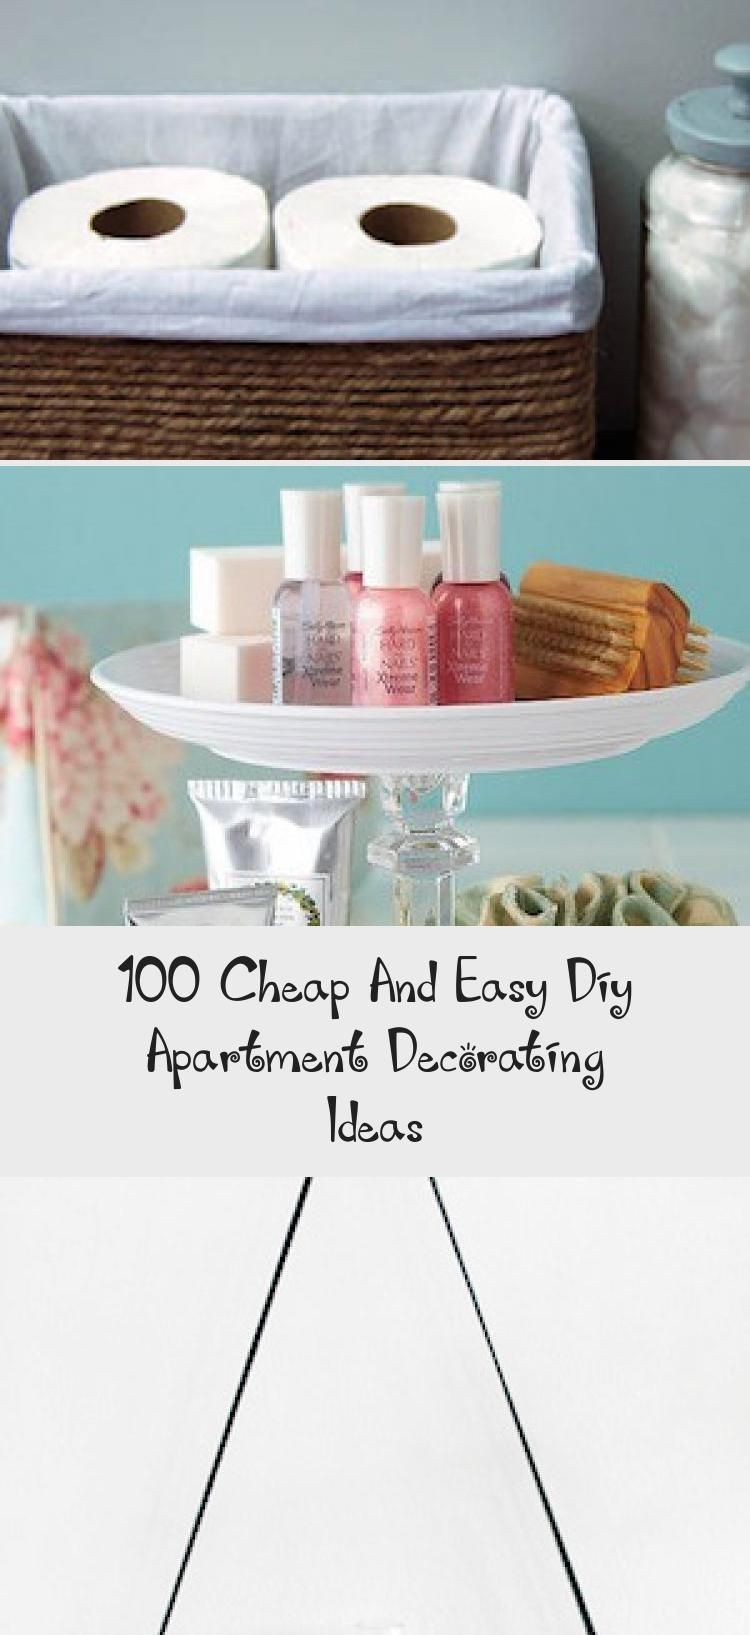 100 Cheap And Easy Diy Apartment Decorating Ideas - Decor Dıy - 100 Cheap and Easy DIY Apartment Decorating Ideas #diy #apartmentdecorating #homedecor #diydecorShelves  Informations About 100 Cheap And Easy Diy Apartment Decorating Ideas – Decor Dıy Pin You can easily use my profile to examine different pin types. 100 Cheap And Easy Diy Apartment Decorating Ideas – Decor Dıy pins are as aesthetic and useful as you can use them for decorative purposes at any time and add them to your website or